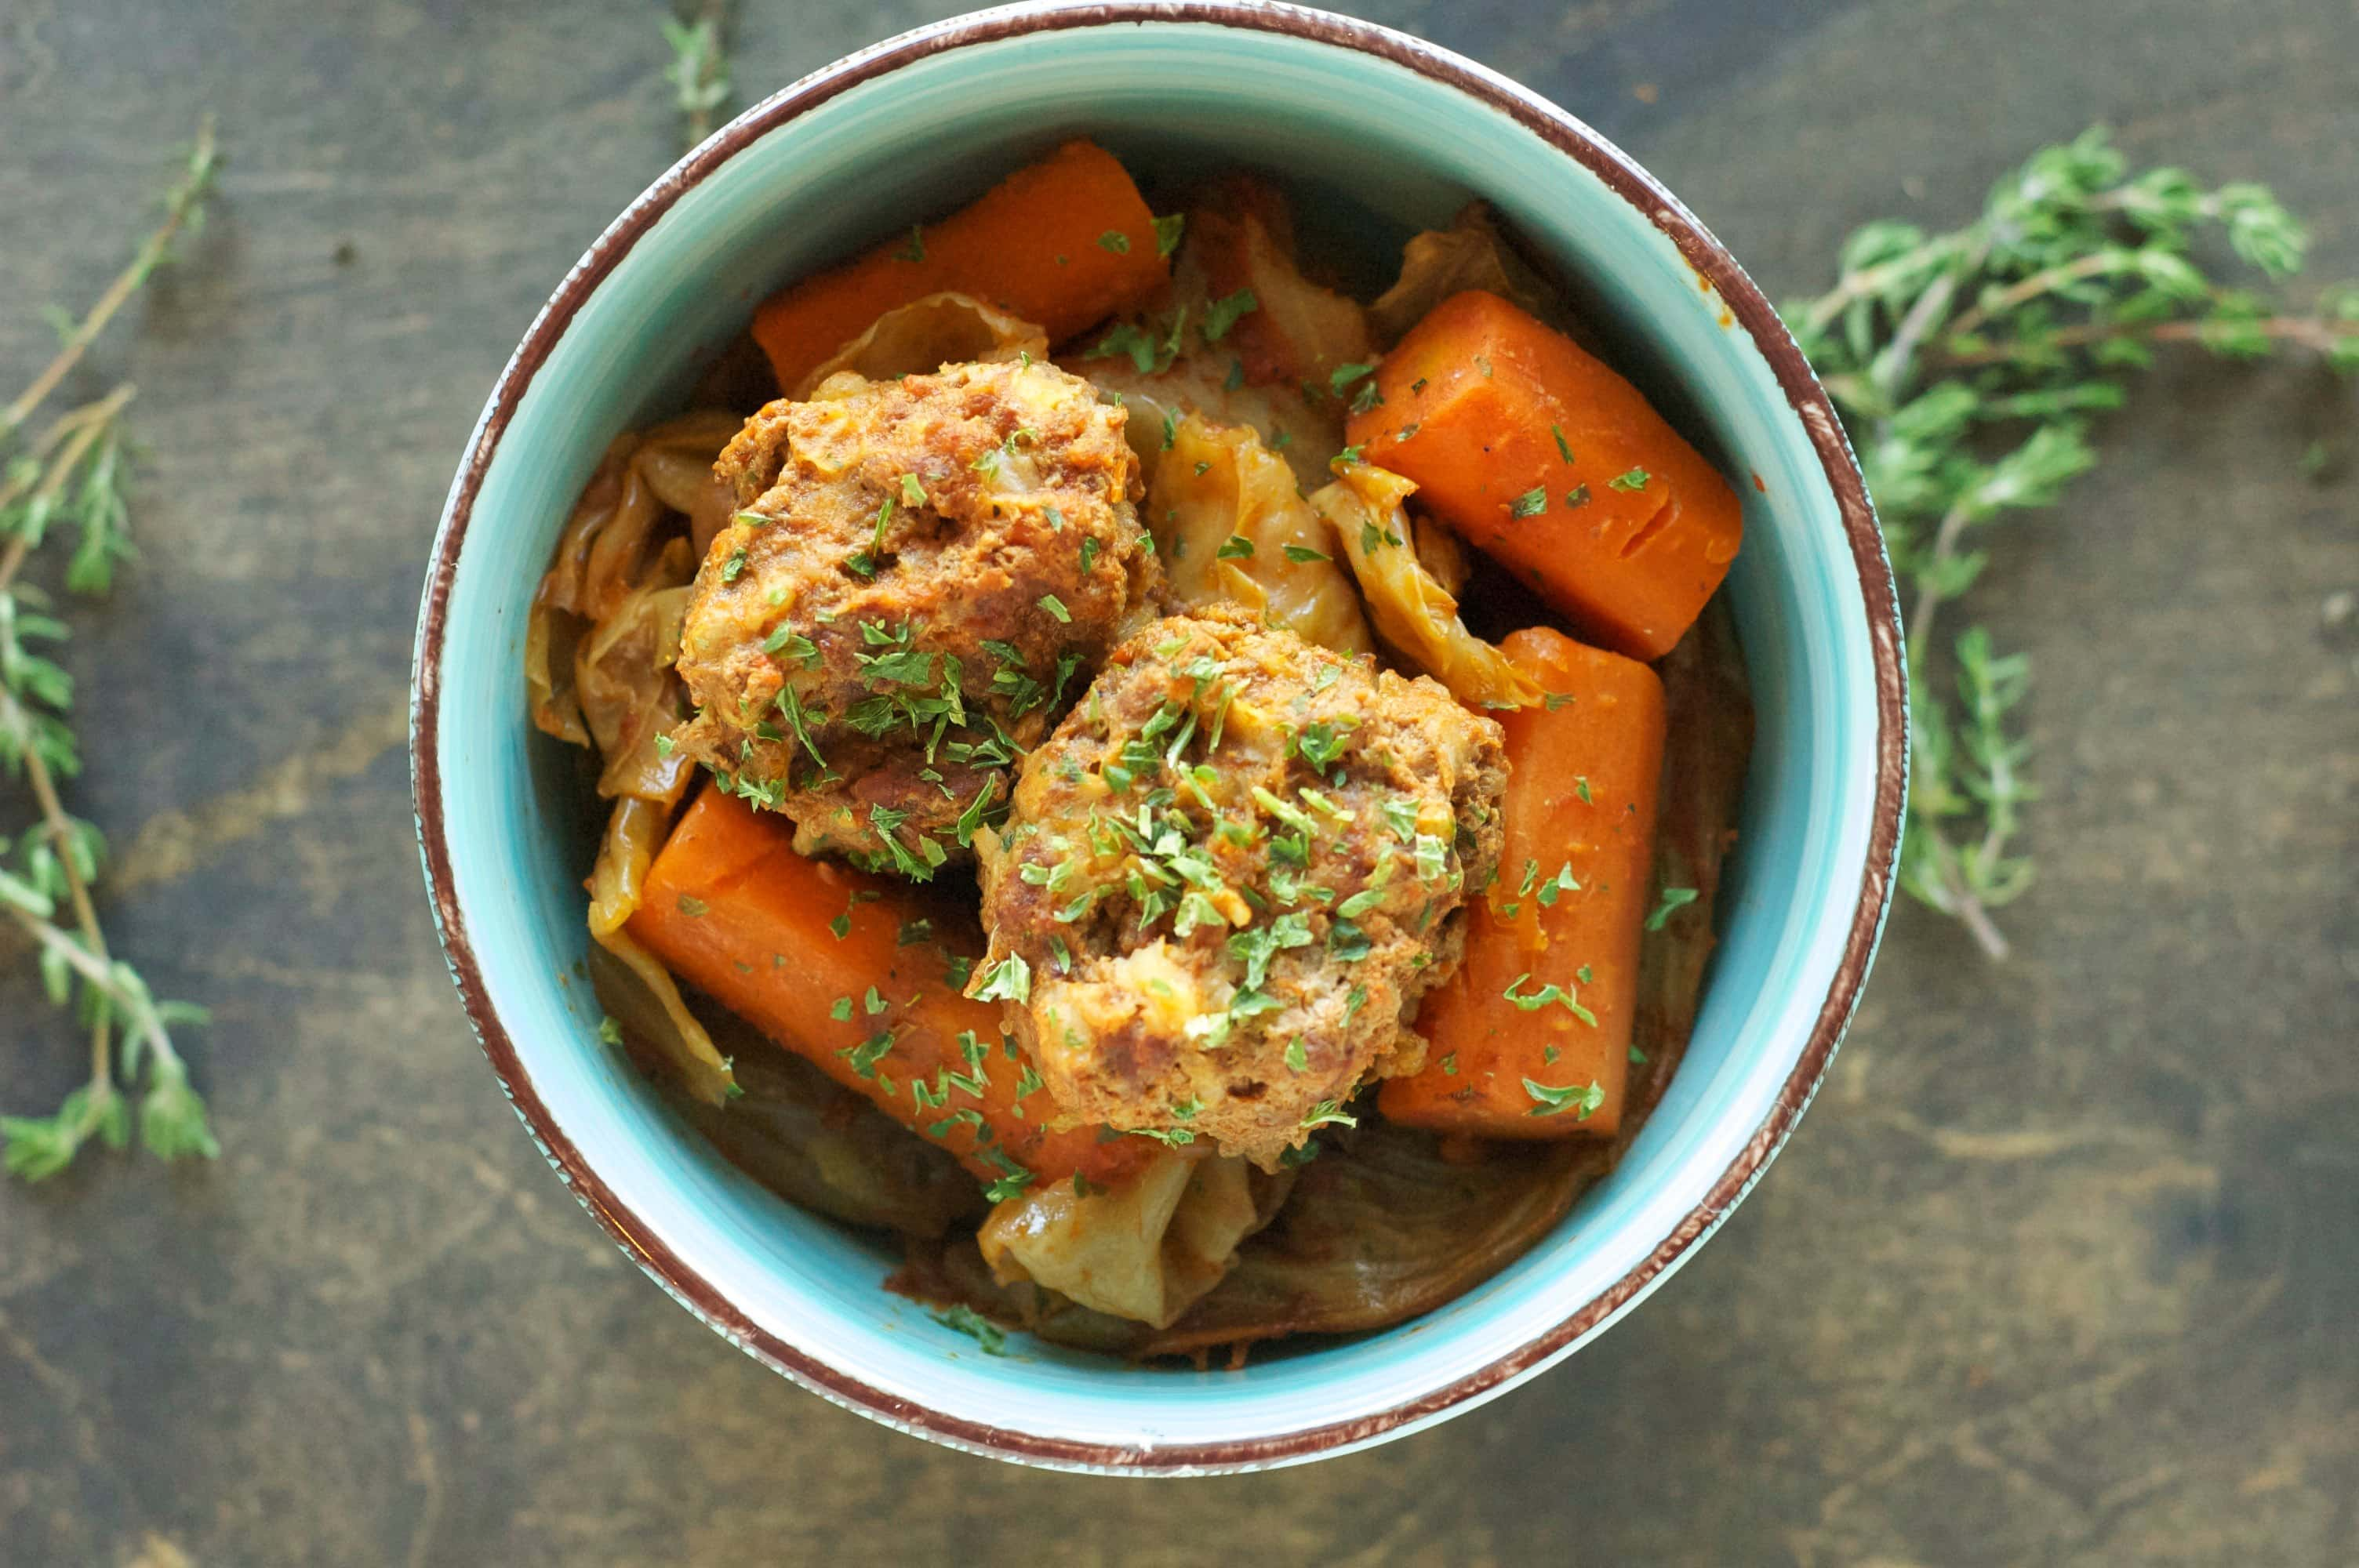 top view of meatballs, carrots and cabbage